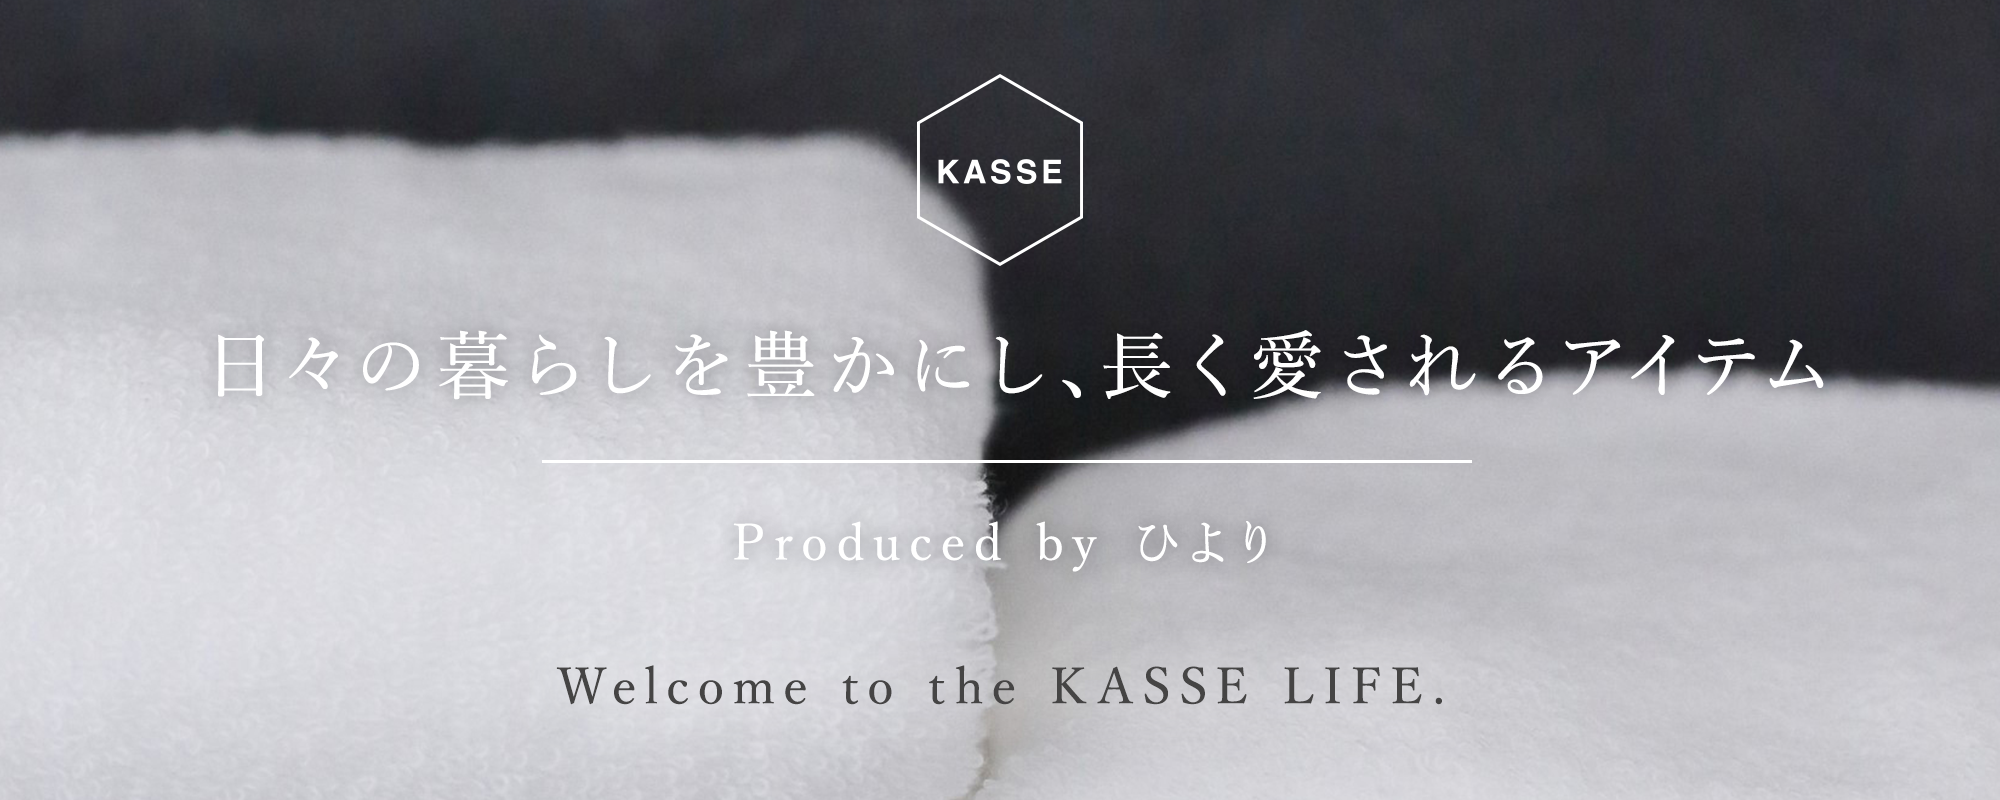 KASSE|日々の暮らしを豊かにし、長く愛されるアイテム|Produced by ひより|Welcome to the KASSE LIFE.